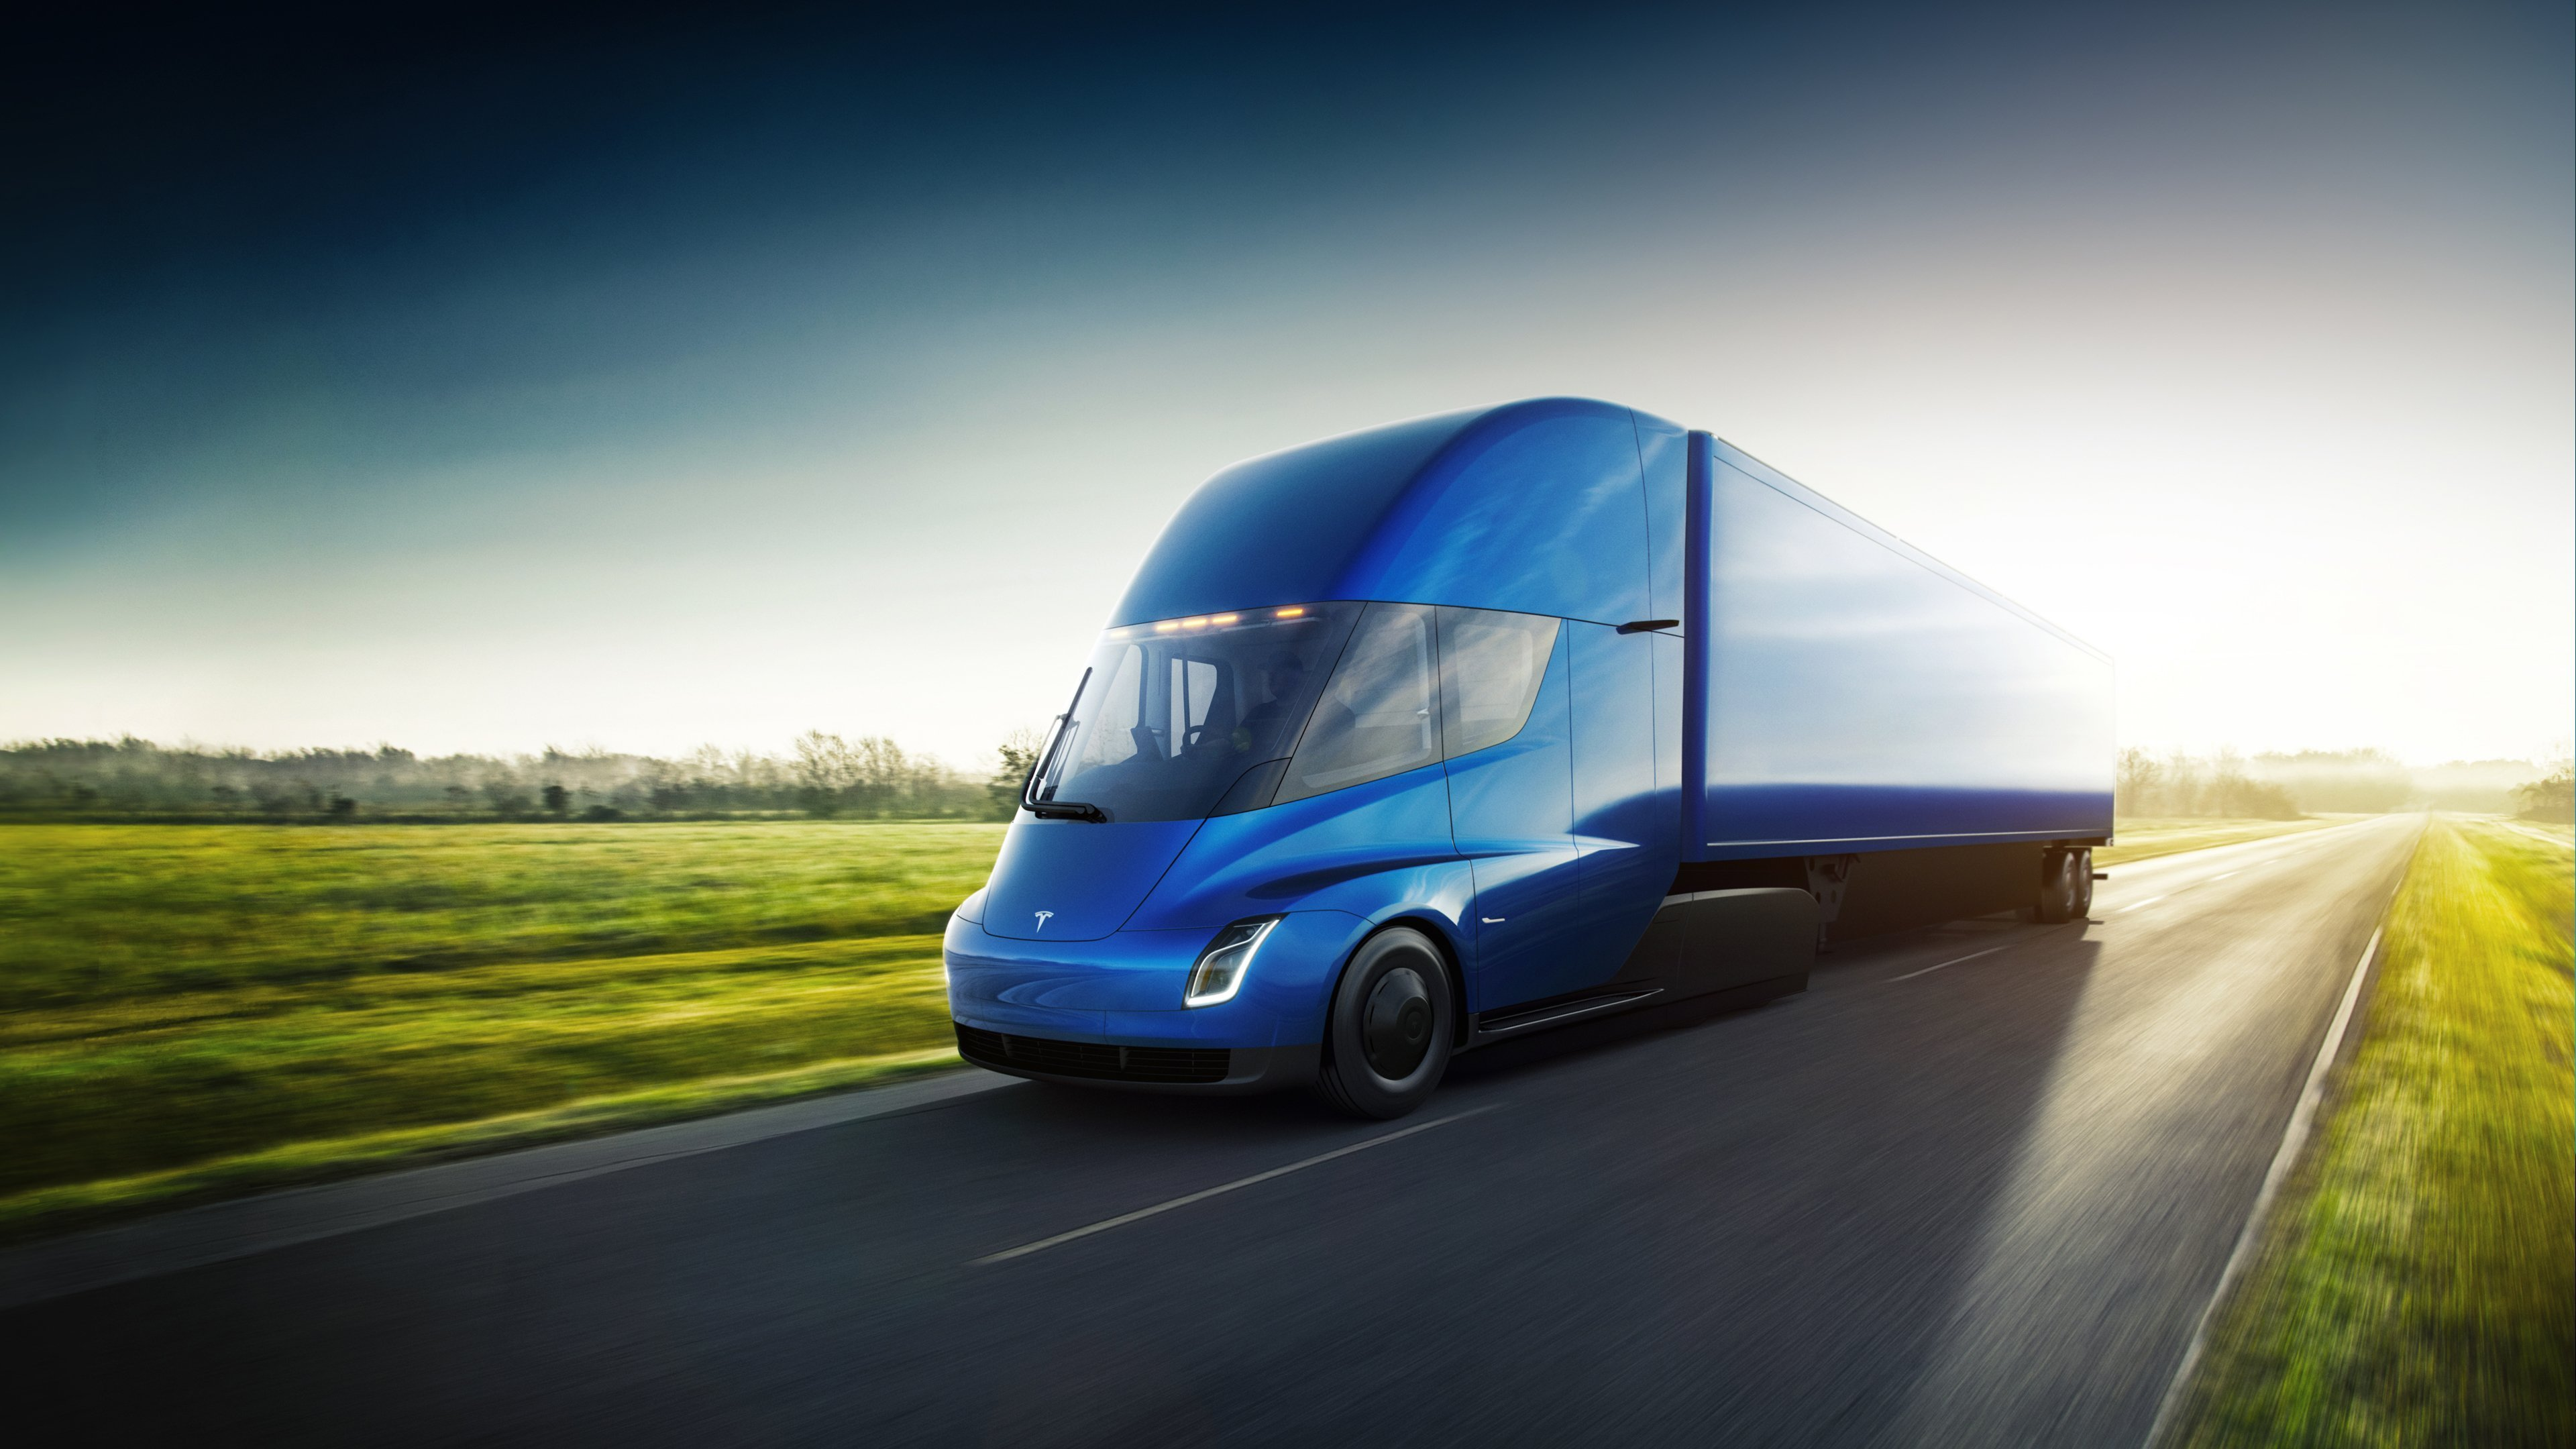 Tesla's semi-truck will have up to 500 miles of range, the automaker claims.